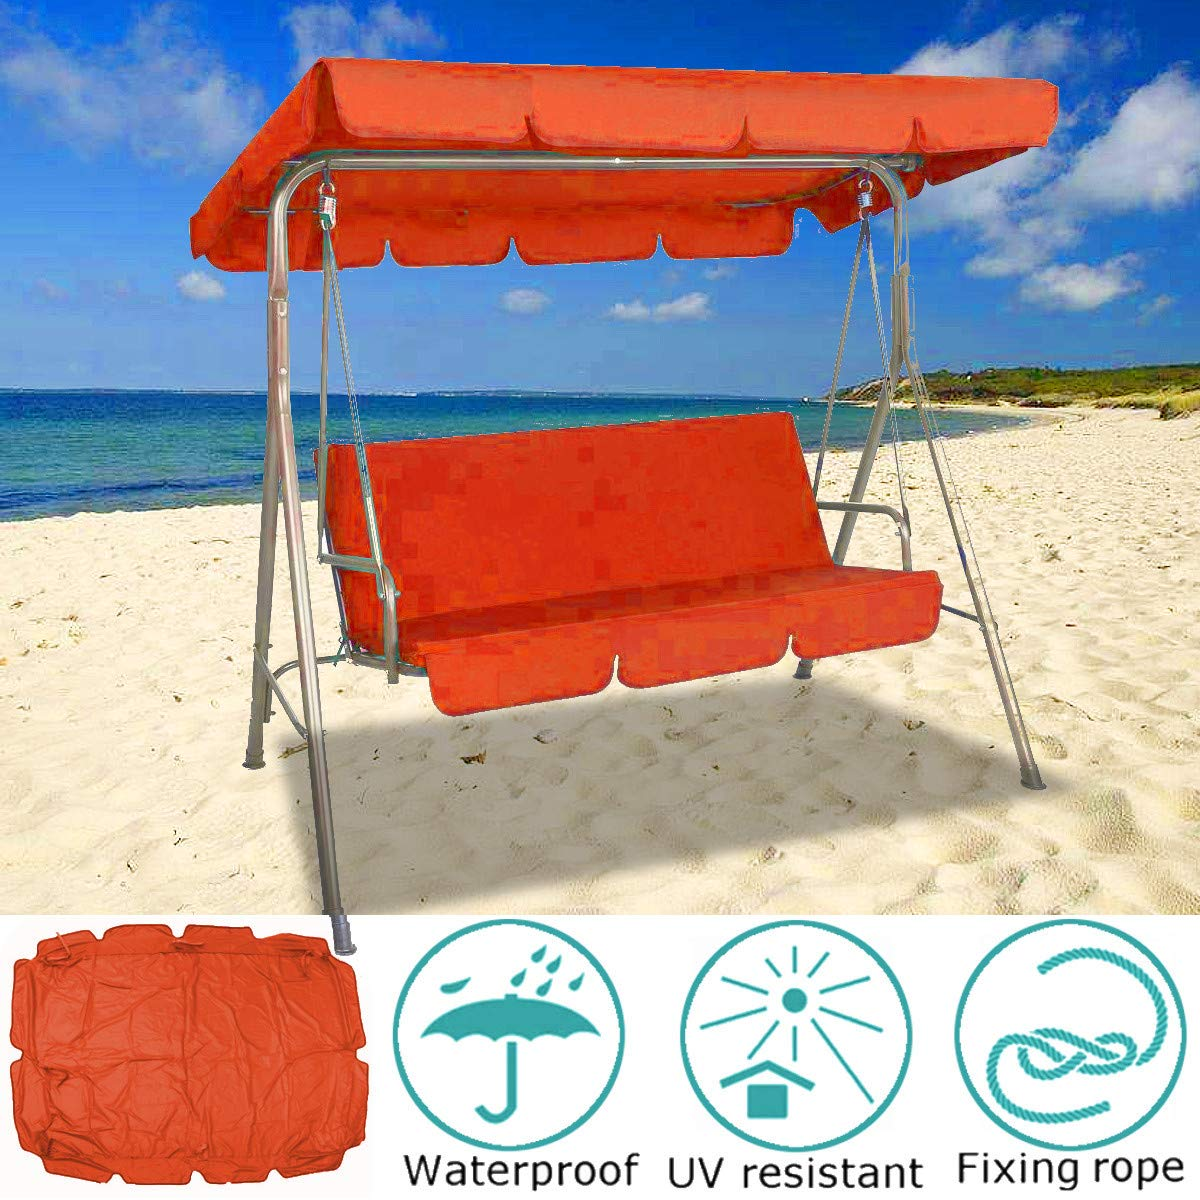 KING DO WAY Garden Outdoor Canopy Chair Swing Chair Rainproof UV Resistant 3 Seater Protective Hammock Cover Orange 200 * 145cm